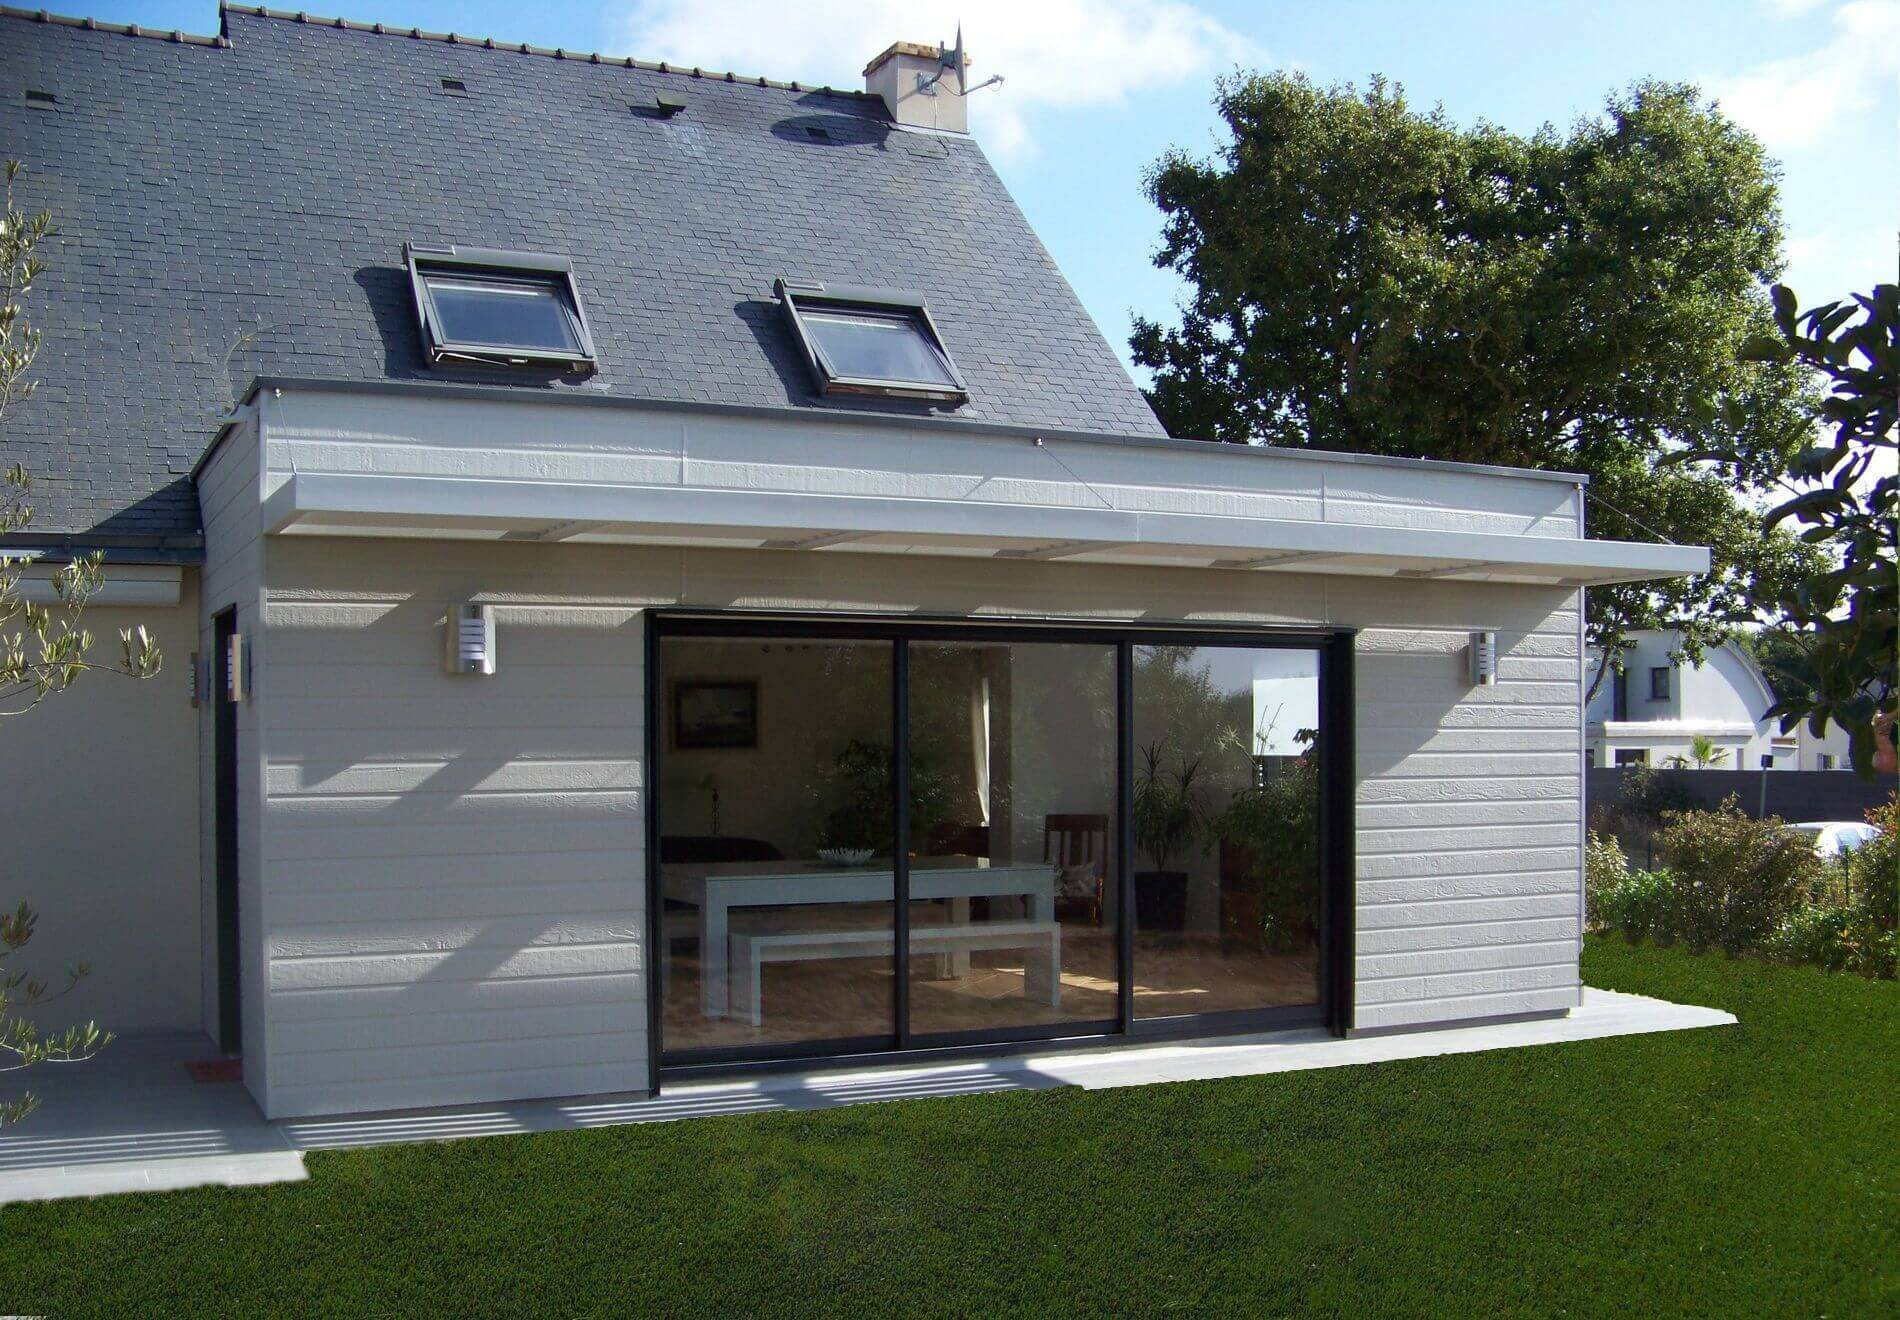 Extension ossature bois gu rande r alisation wood al for Agrandissement maison 80m2